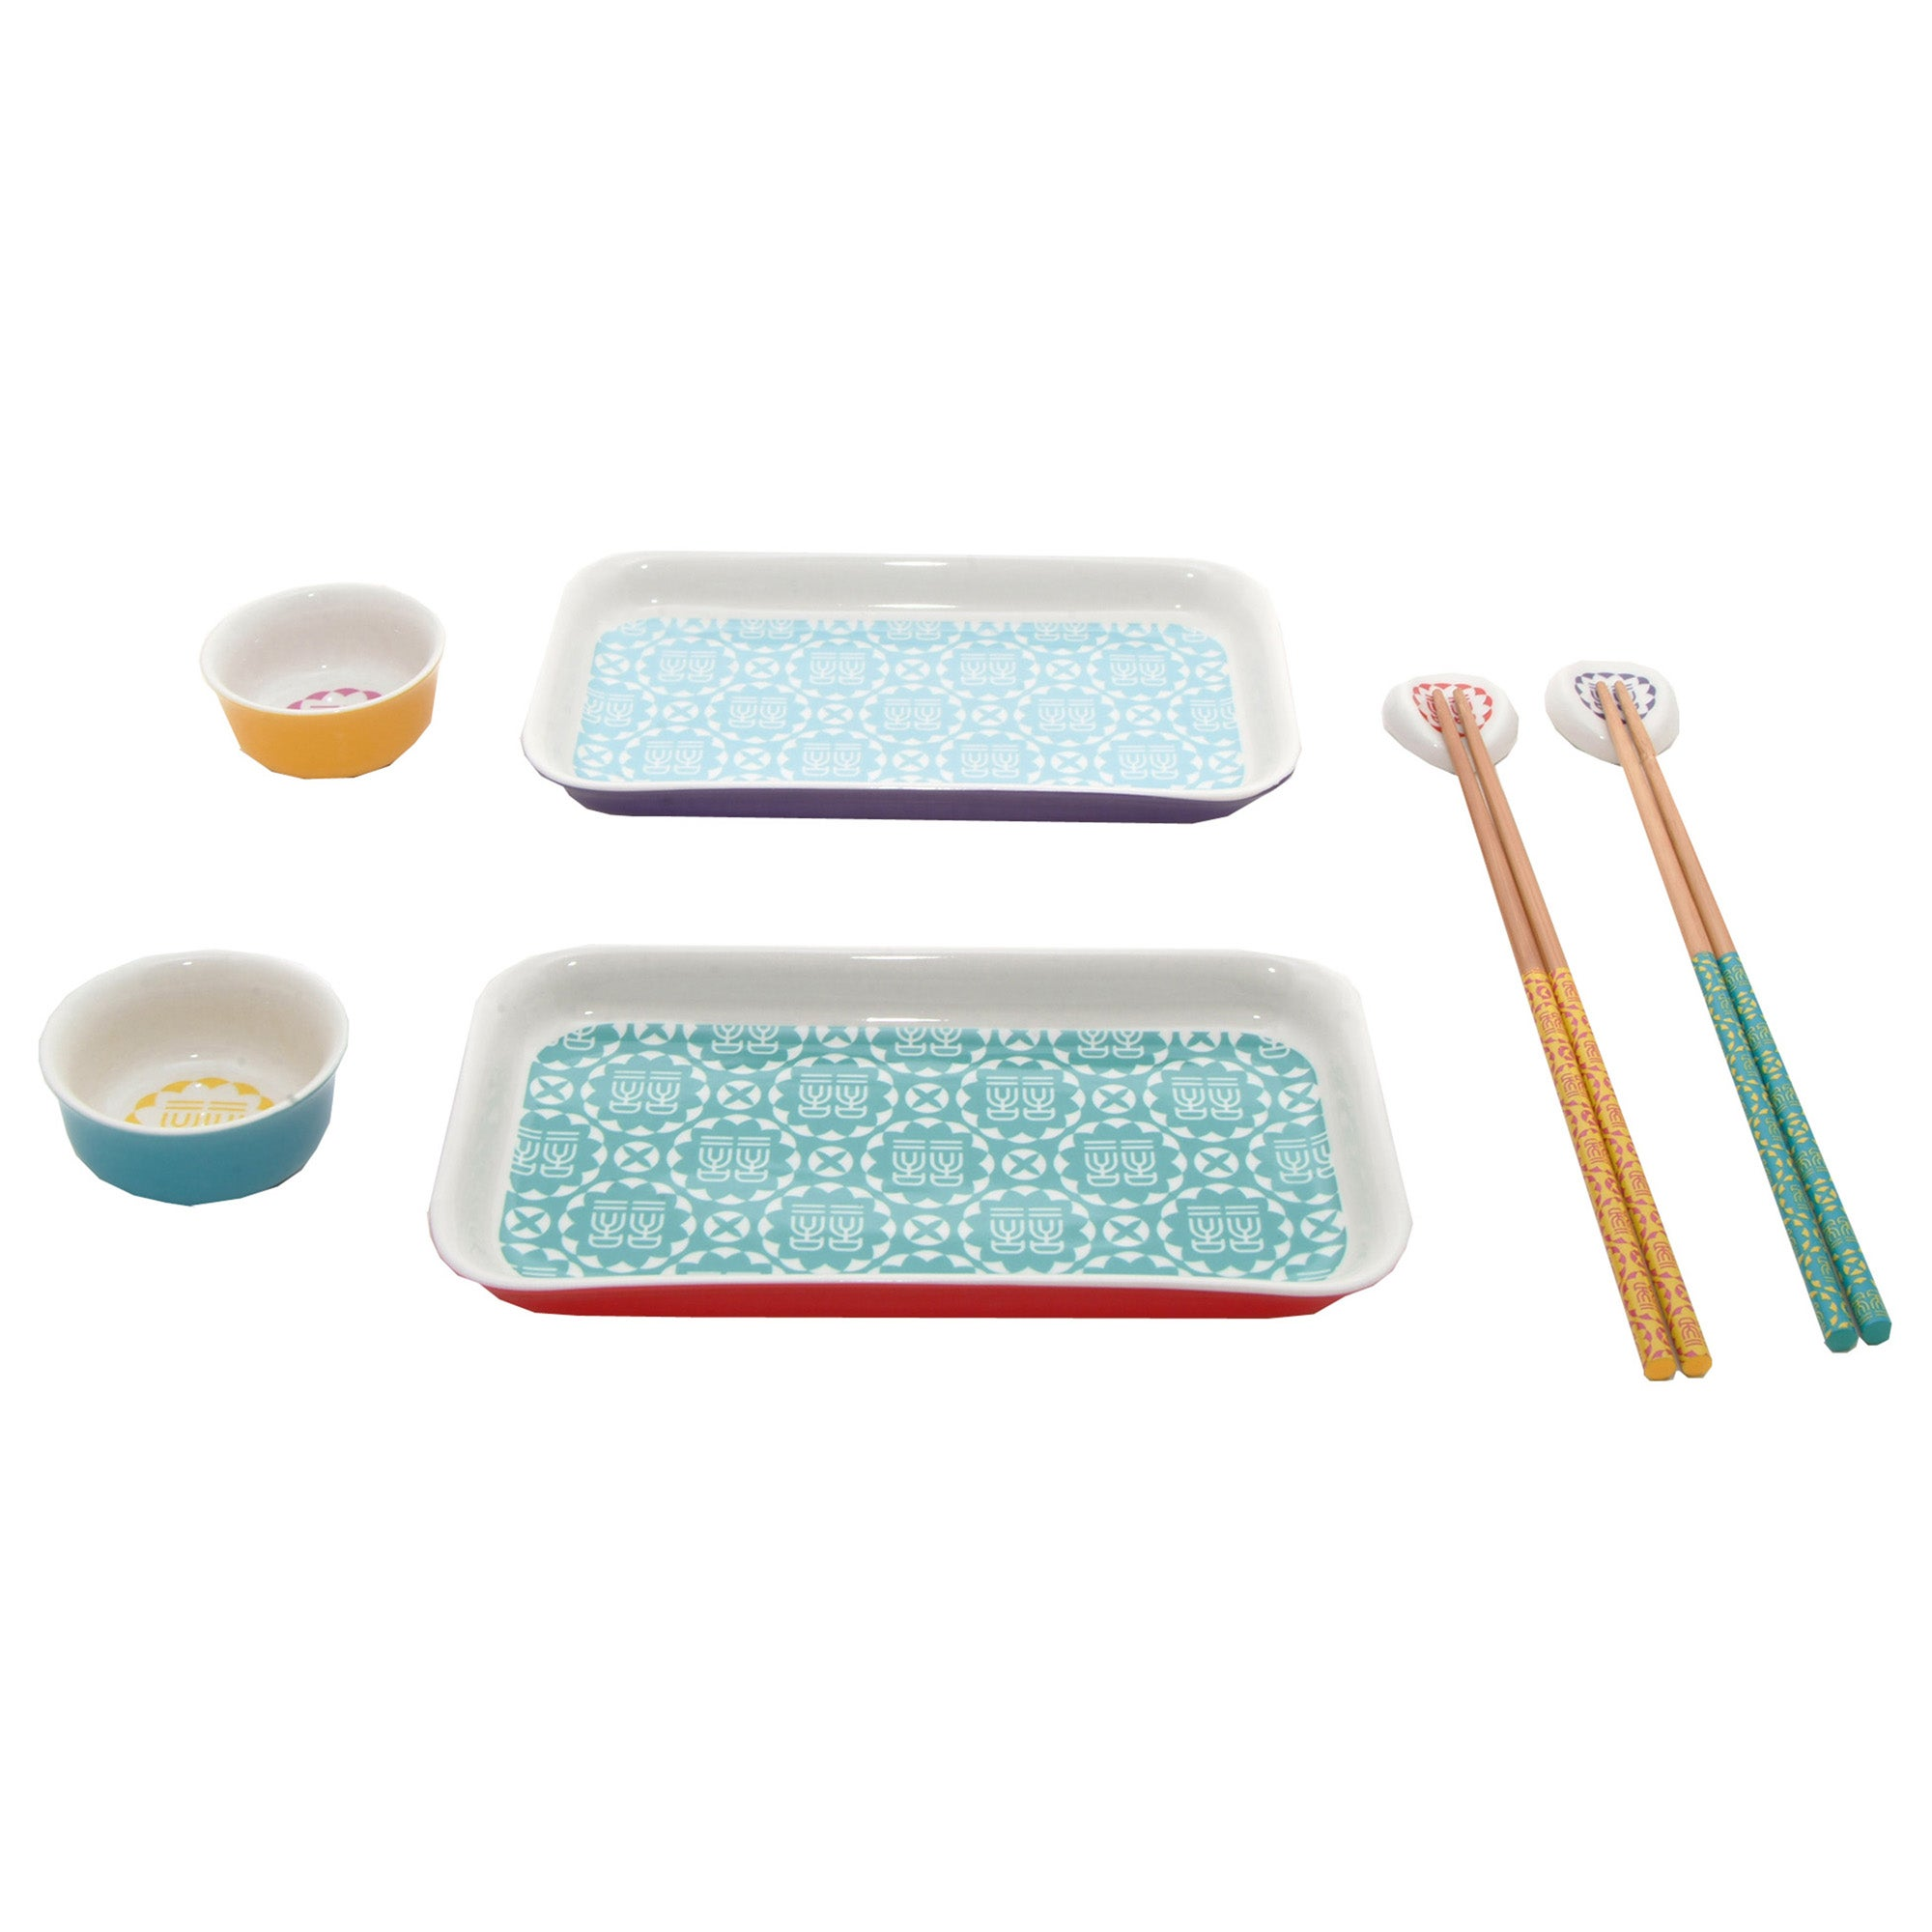 Ching He Huang Collection Sushi Serving Set for 2